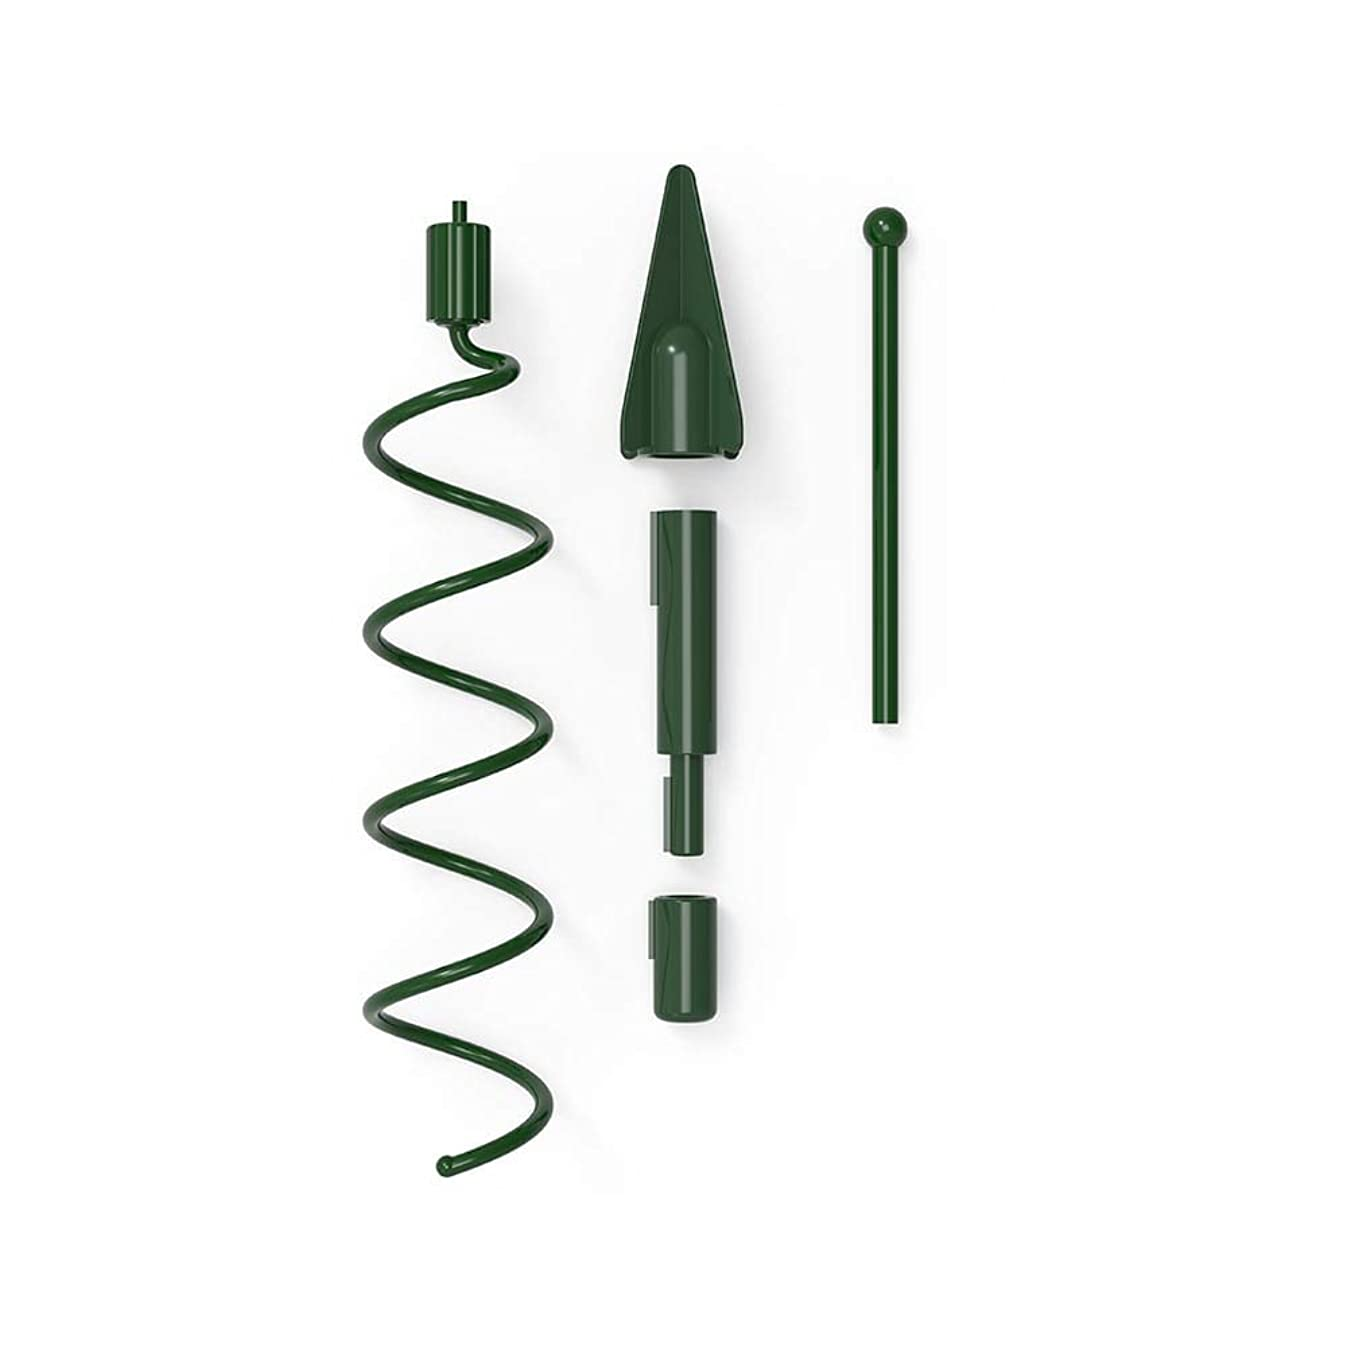 VILLAGE LIGHTING COMPANY Christmas Twist-On Holiday Universal Tree Topper Holder - Metal Green Support Rod with Adjustable attachments to stabilize Seasonal Tree Topper Ornaments